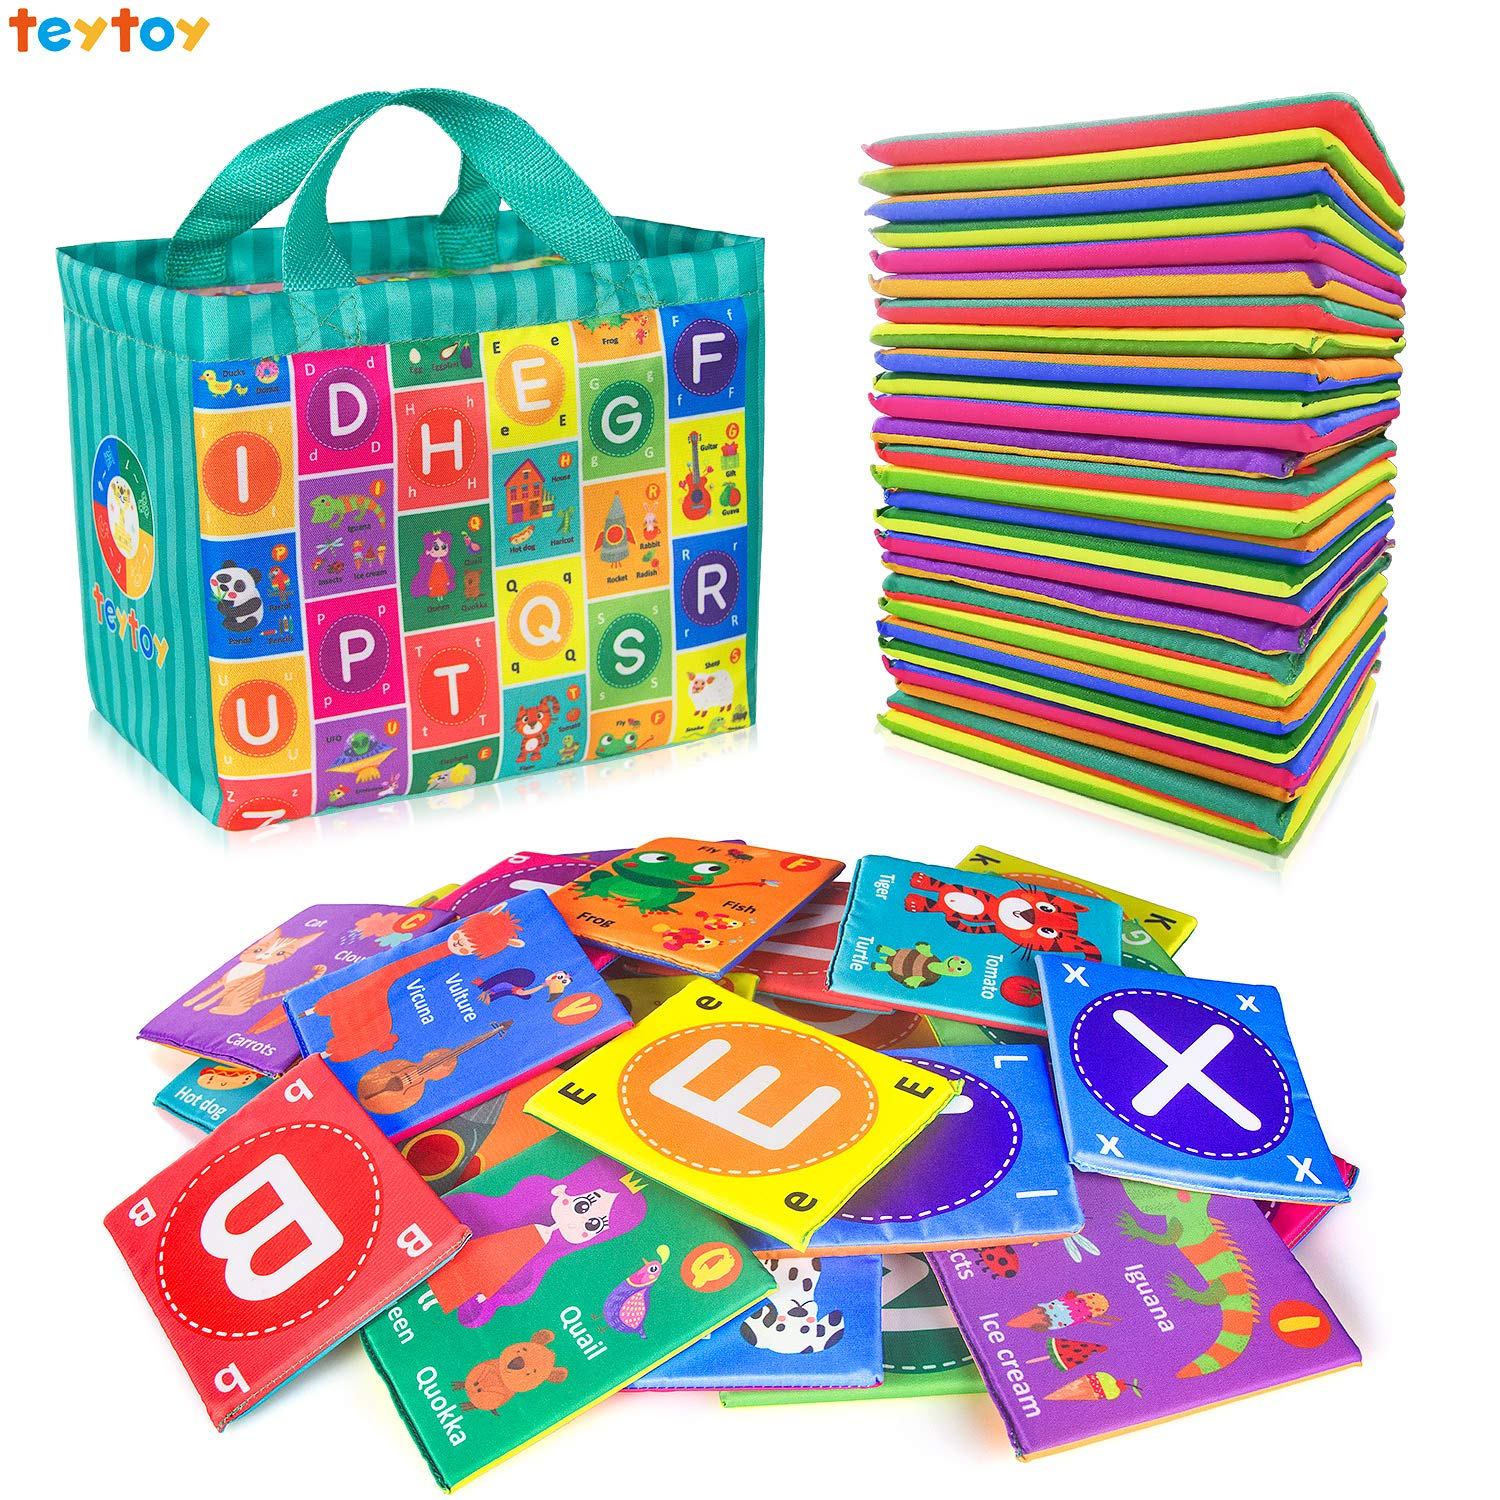 teytoy Baby Soft Alphabet Cards Toys, Baby Early Learning Shape Color Recognition Puzzle Toy with Storage Bag, Washable Soft Cloth Toy for Over 0 Years